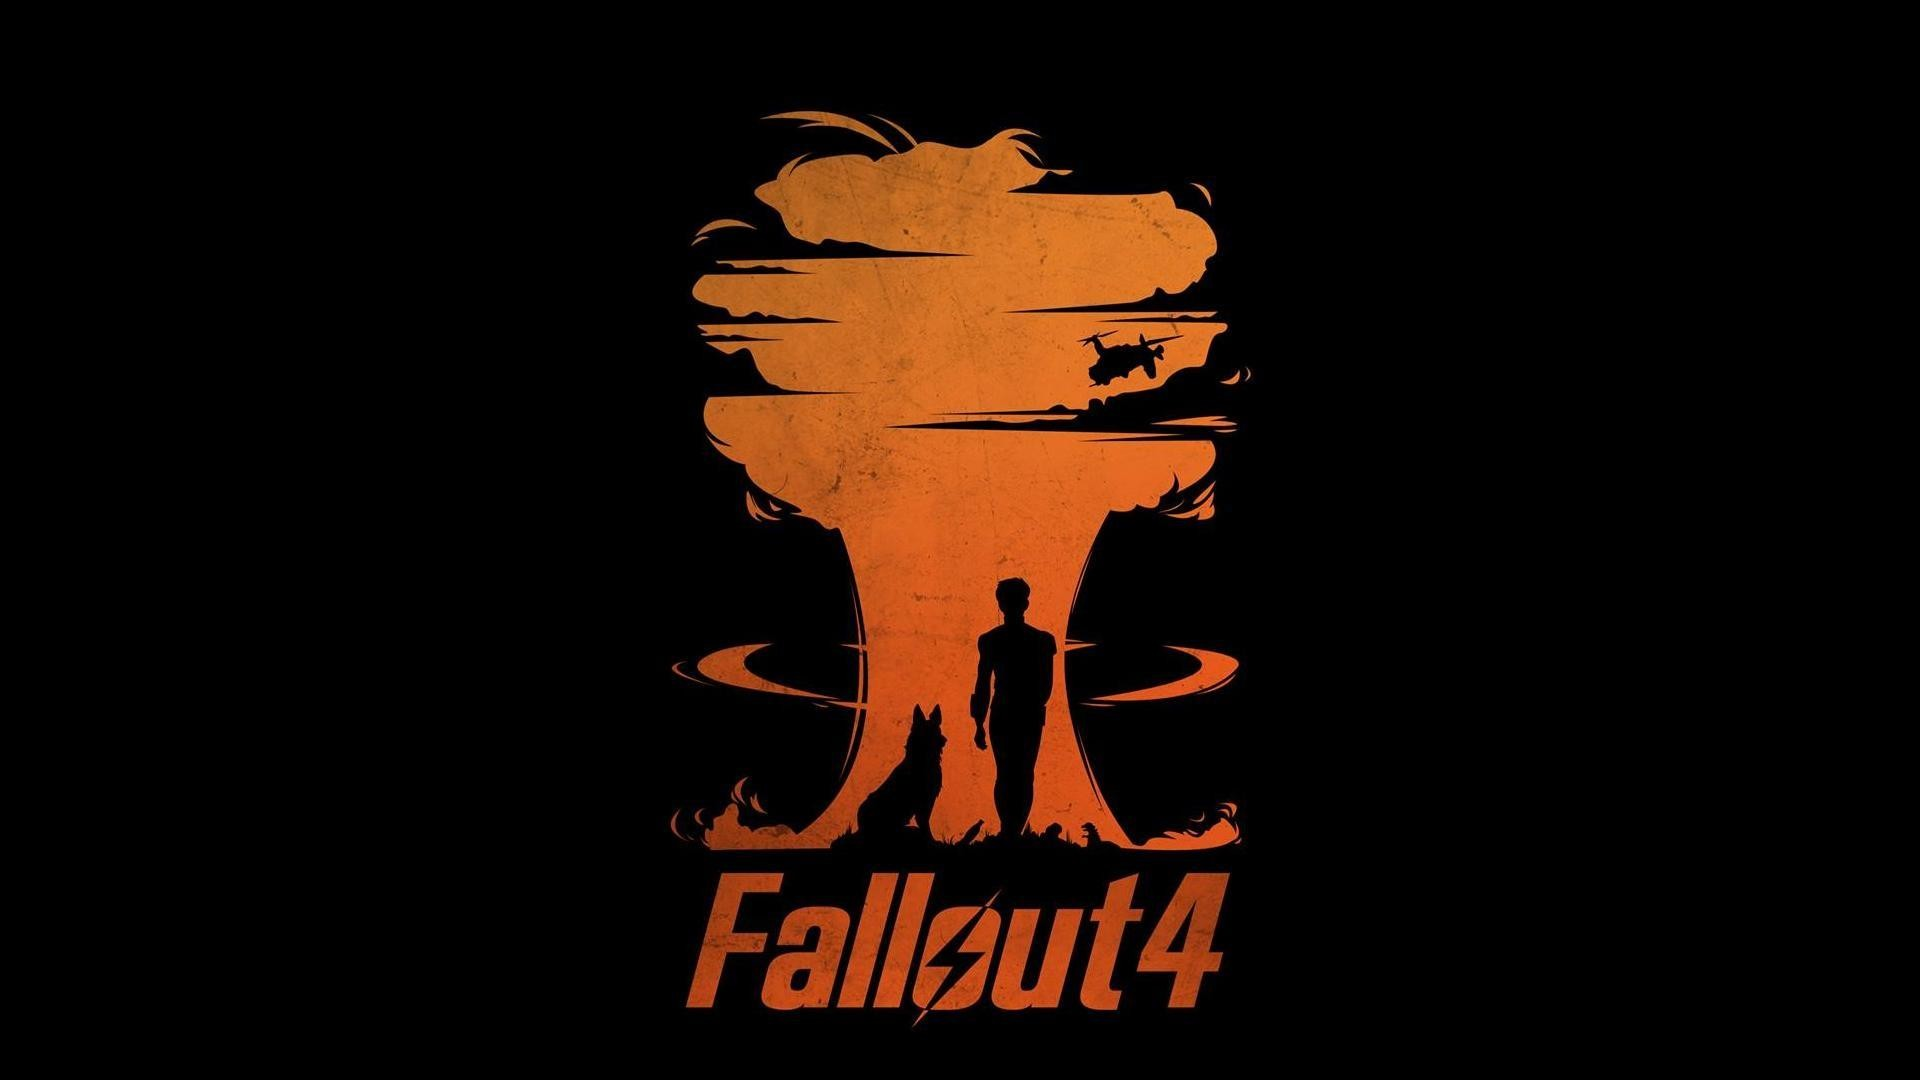 Fallout Please Stand By Wallpaper High Definition On Wallpaper Hd 1920 x  1080 px 623.08 KB